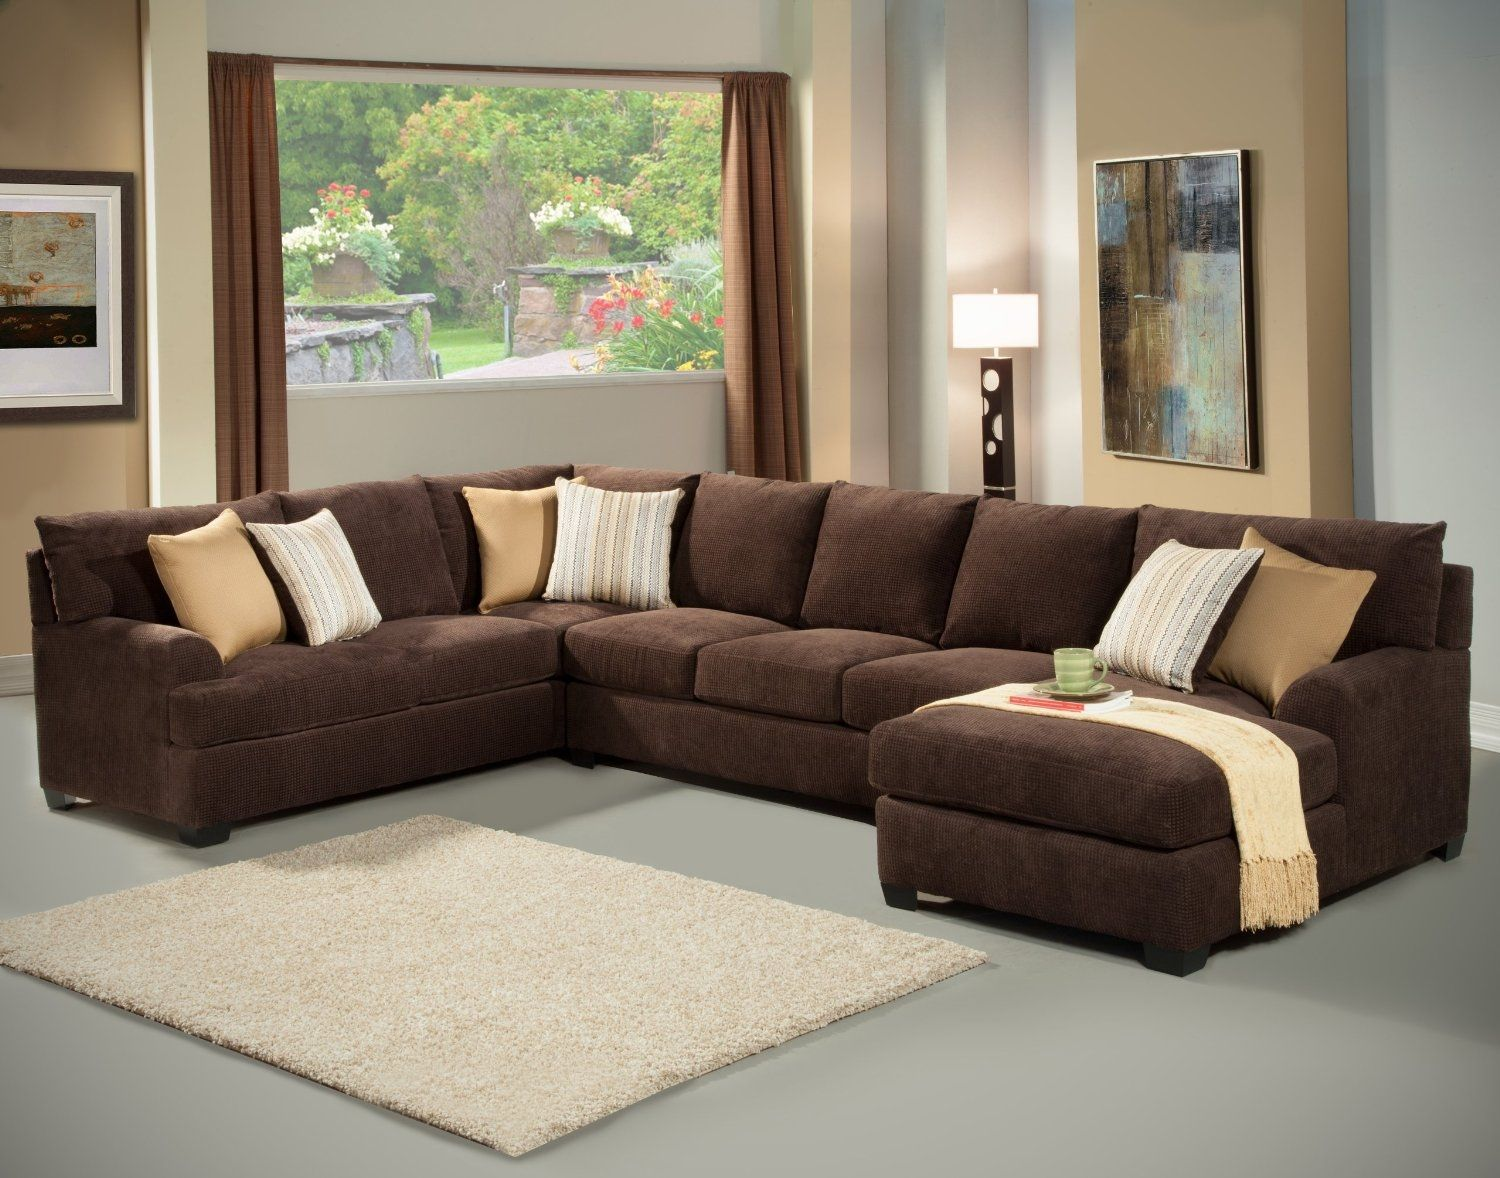 Brown Microfiber Sectional Sofa With Chaise Brown Sectional Living Room Brown Living Room Decor Brown Sectional Sofa Microfiber sectional sofa with chaise